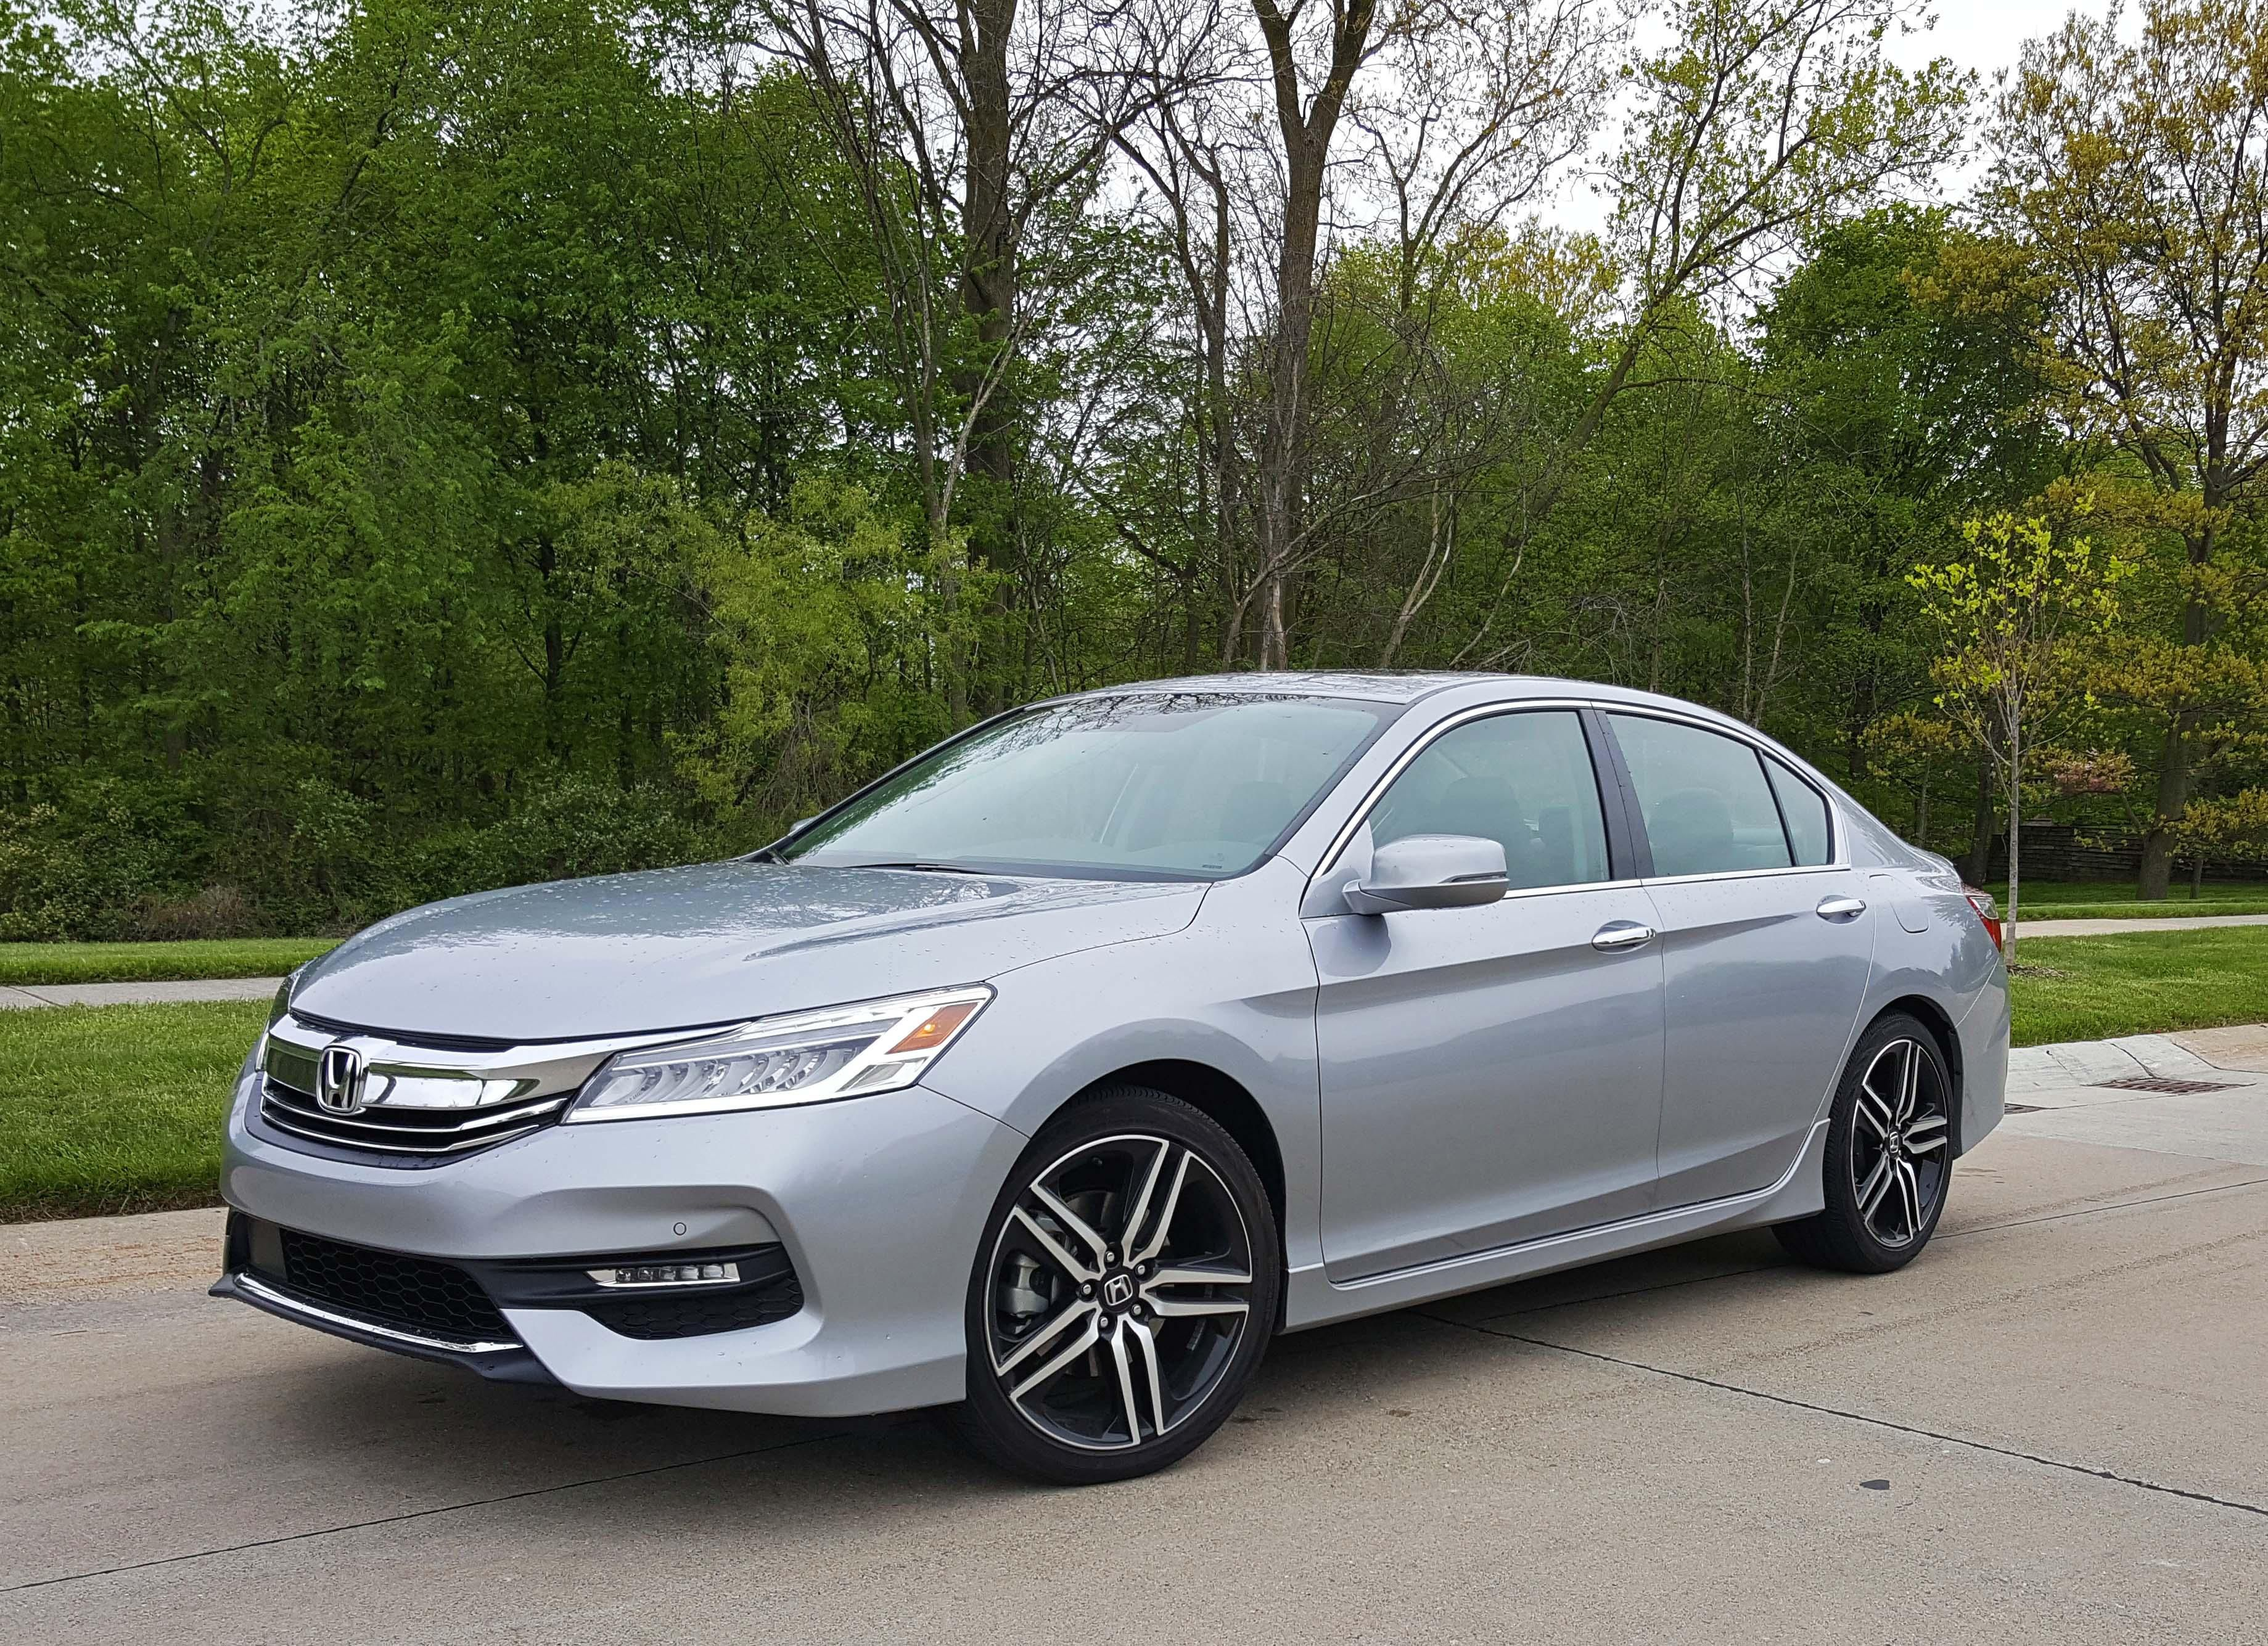 Honda Accord Sedan sedan big